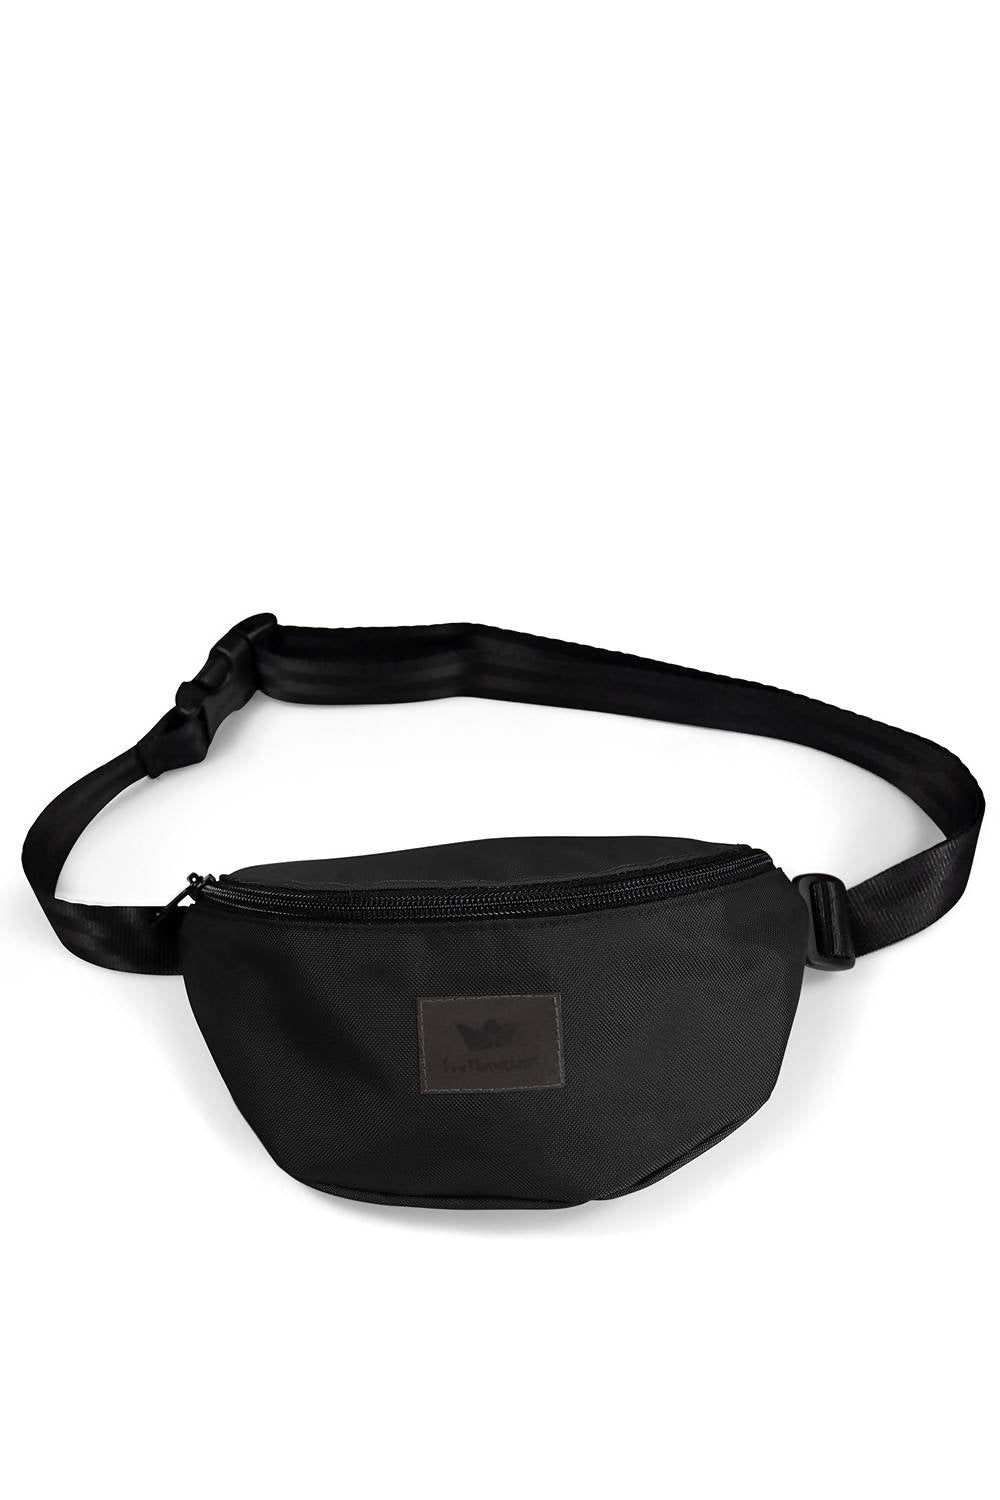 Hip Bag - Black 2